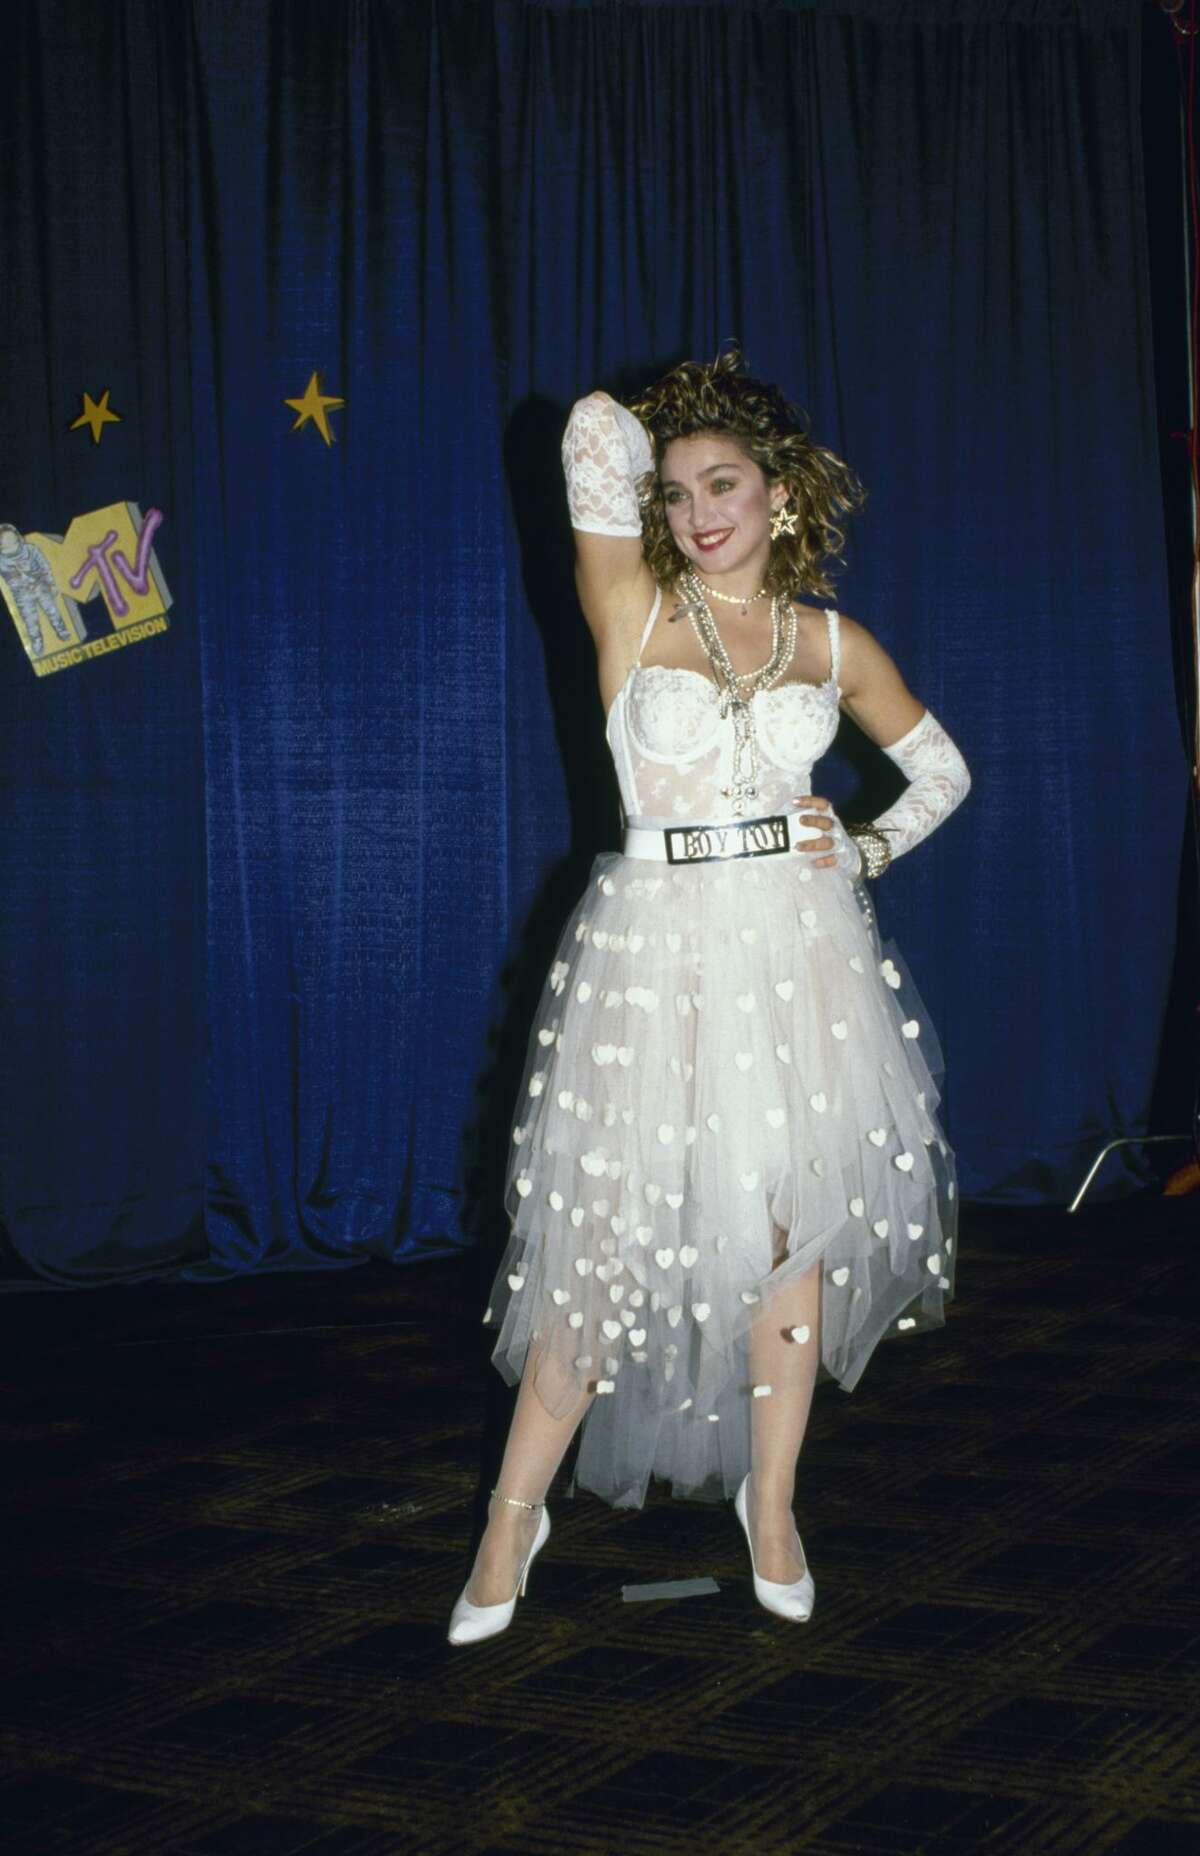 1984:American singer and actress Madonna, dressed in white lace lingerie, pearls, and a 'Boy Toy' belt buckle, stands with one hand on her head and one on her hip at First Annual MTV Video Music Awards.